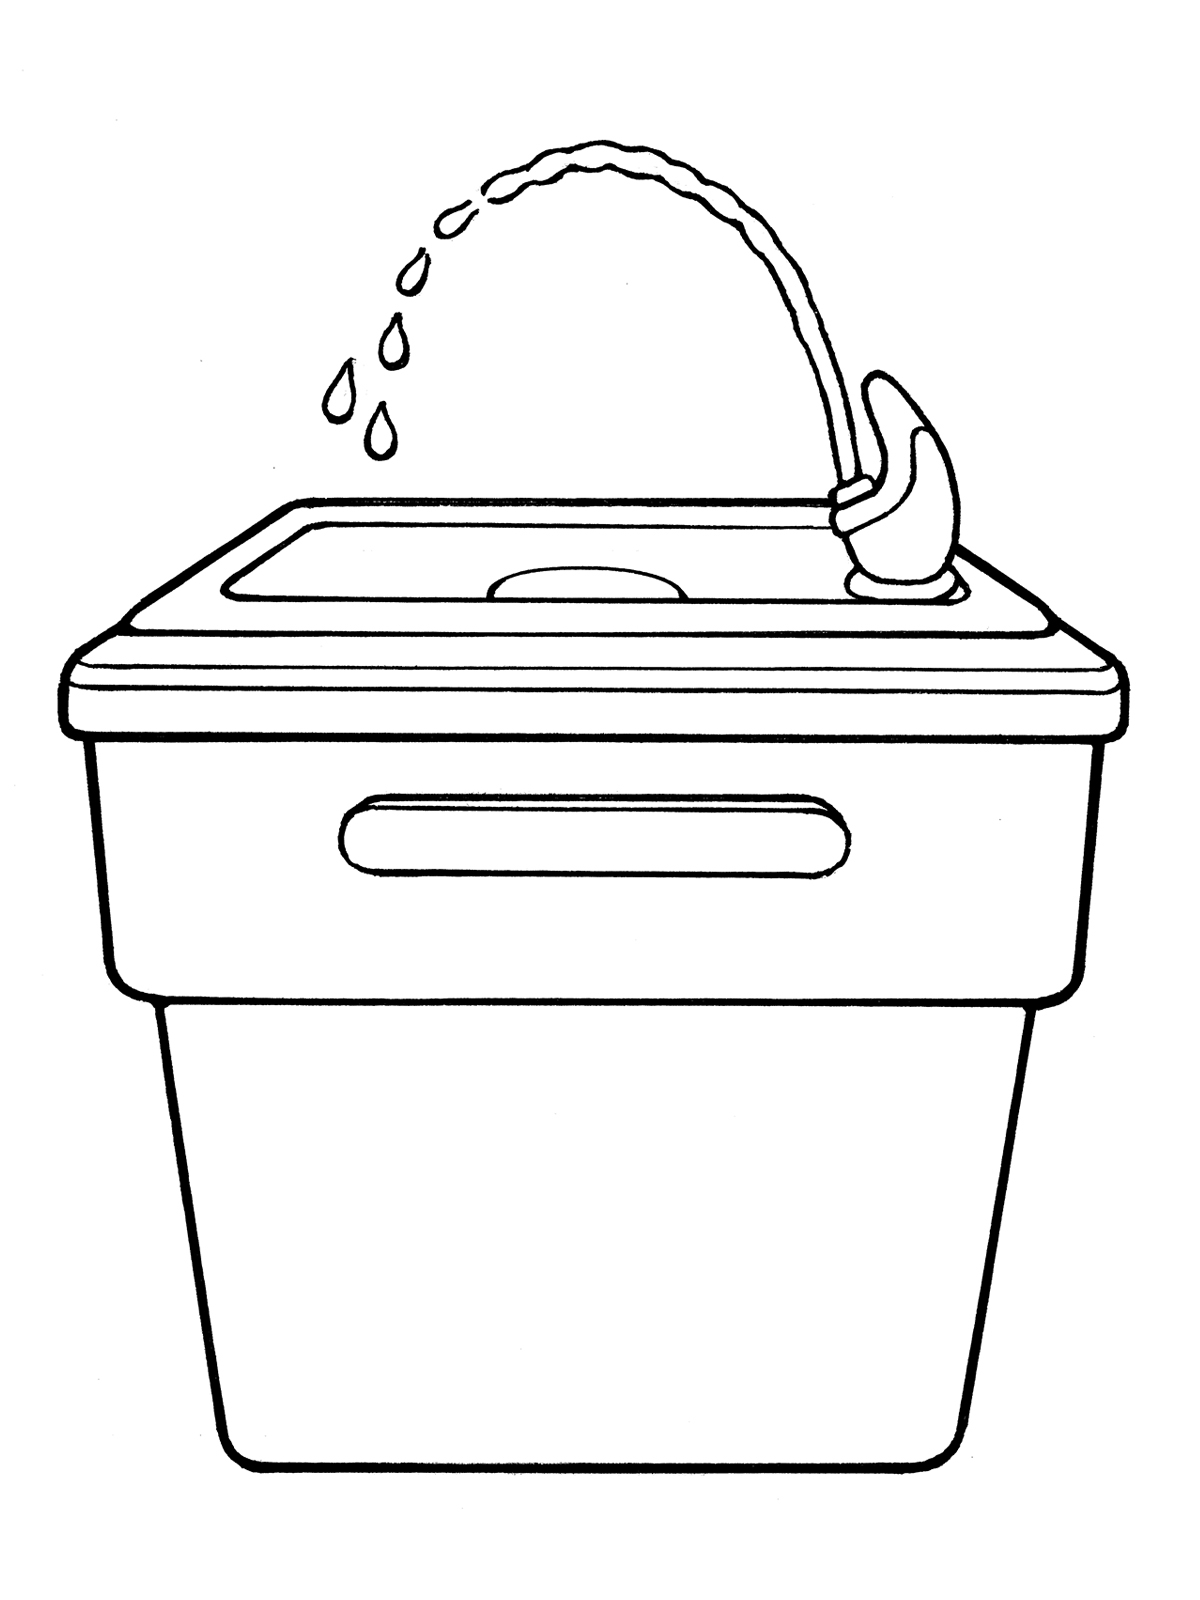 School drinking fountains clipart.